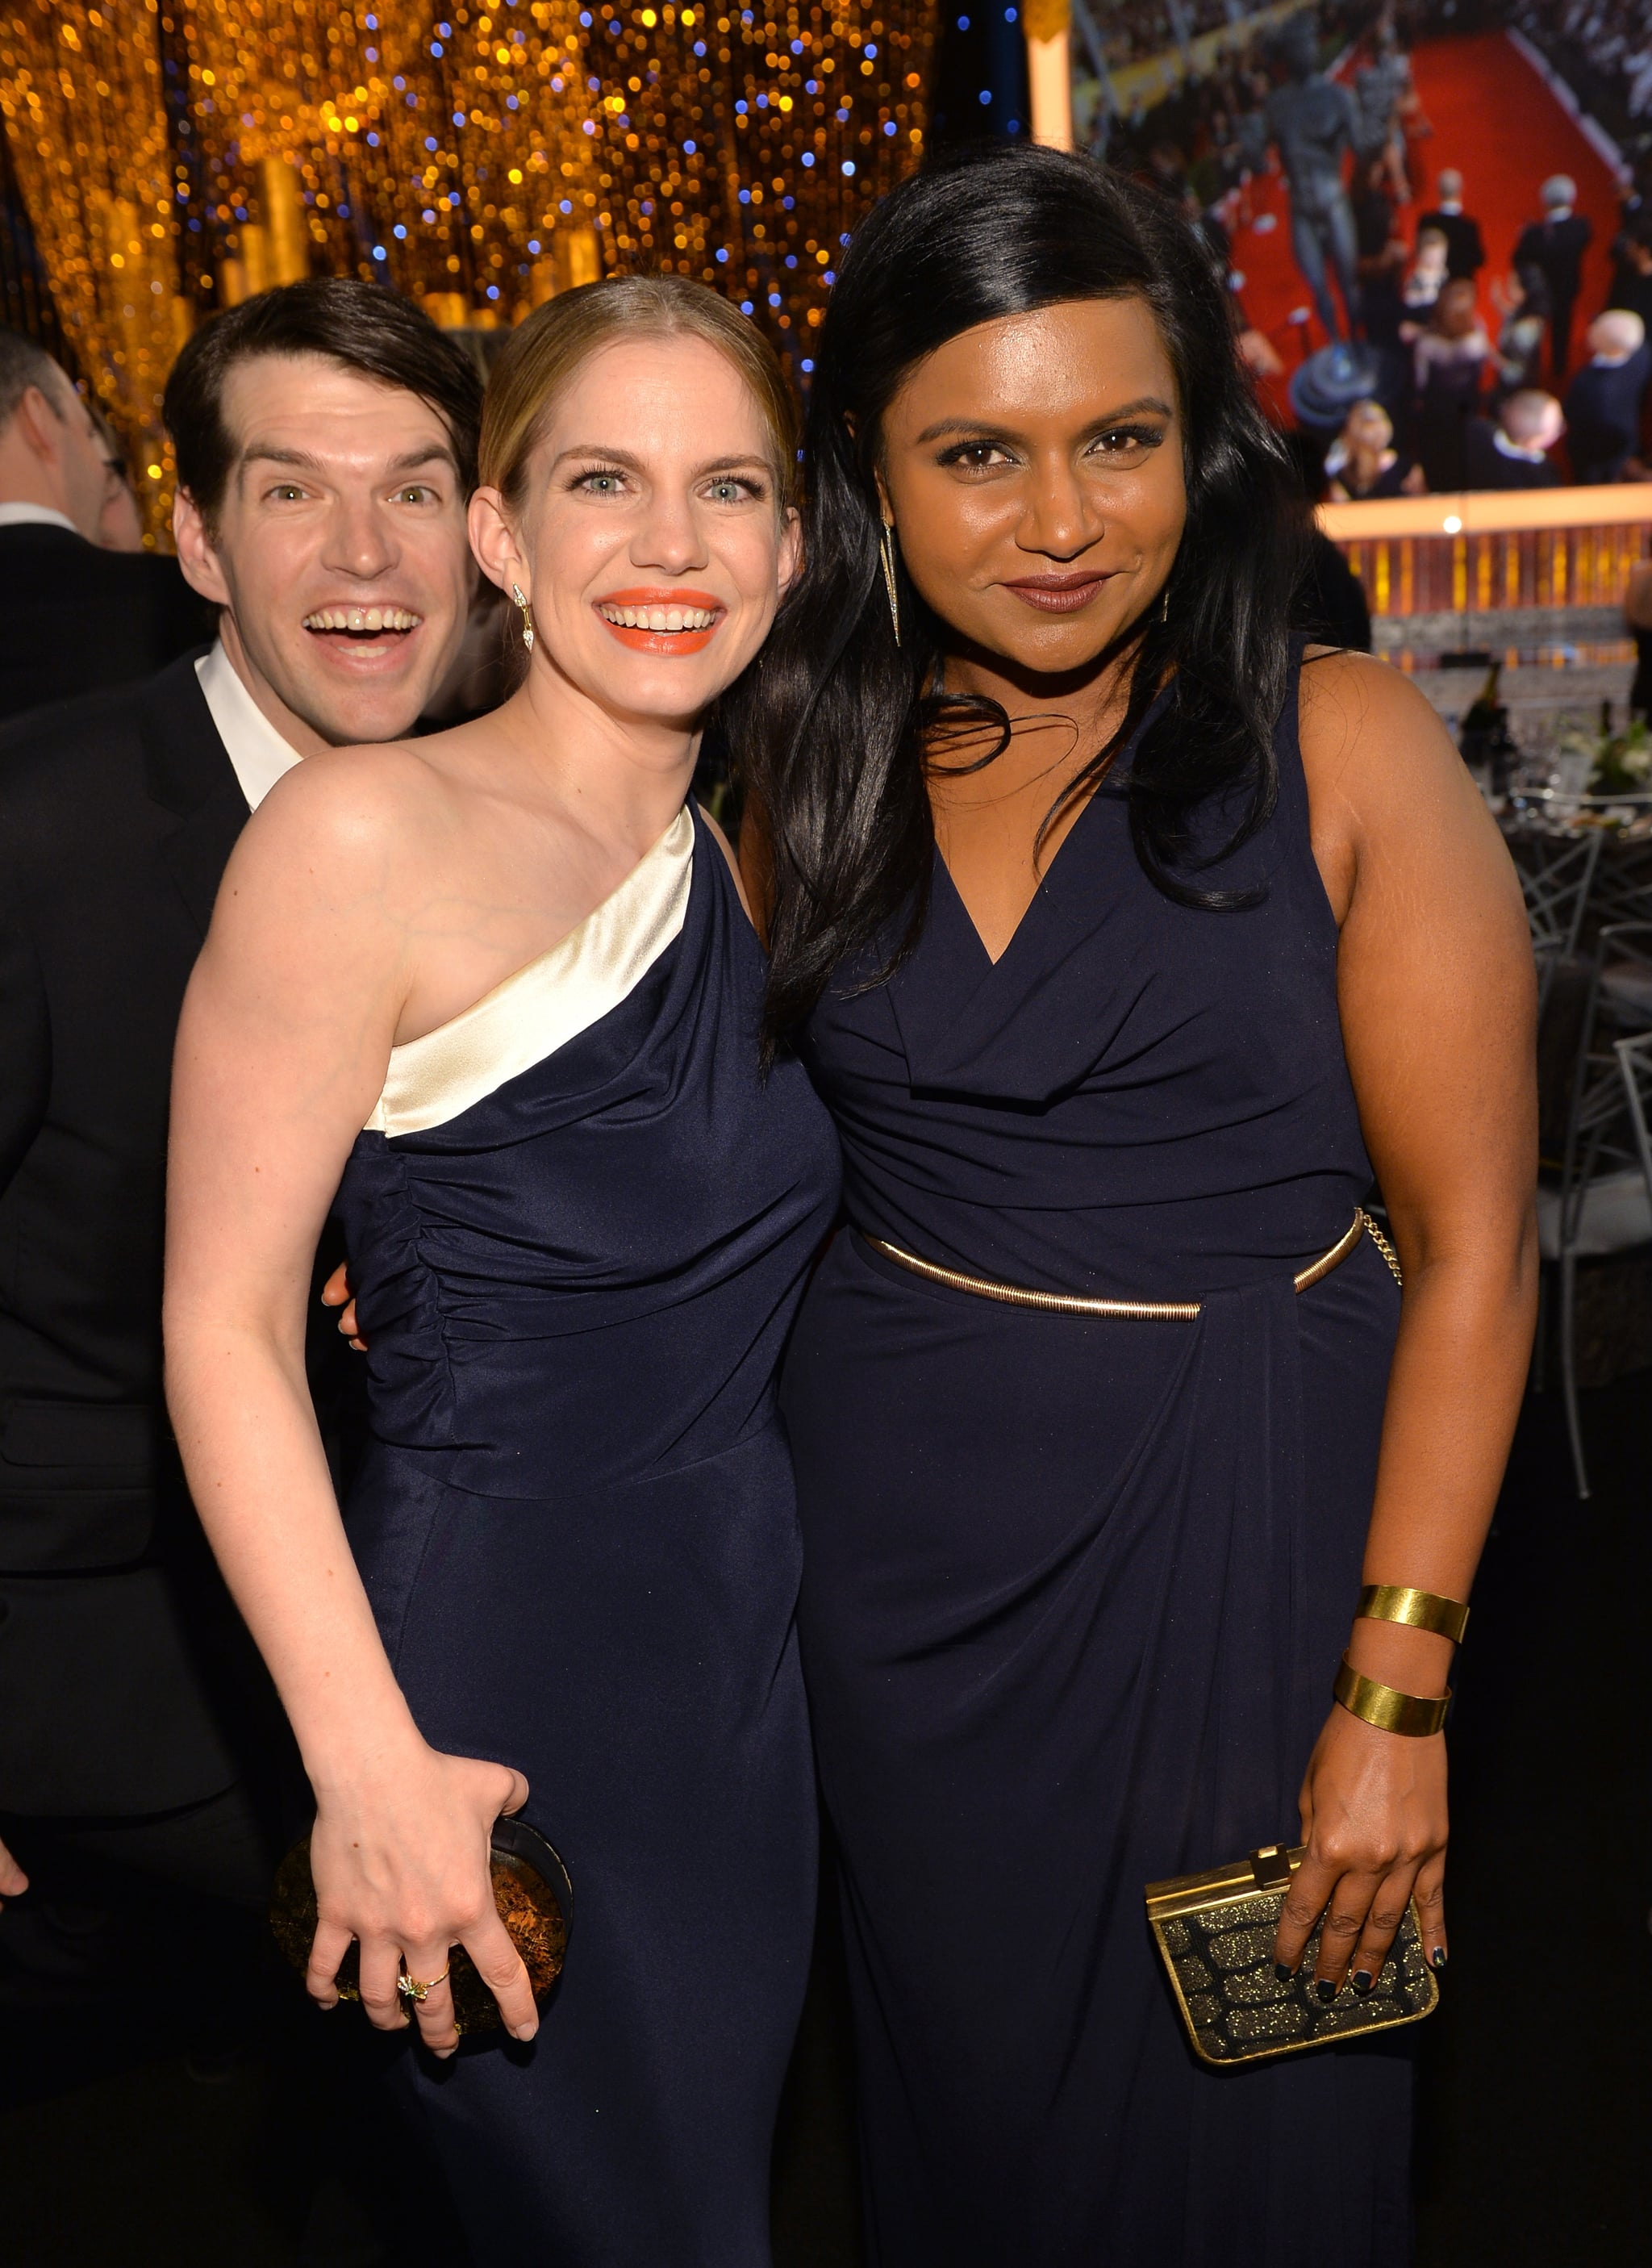 Mindy Kaling and Anna Chlumsky got photobombed by Timothy Simons during the SAGs.